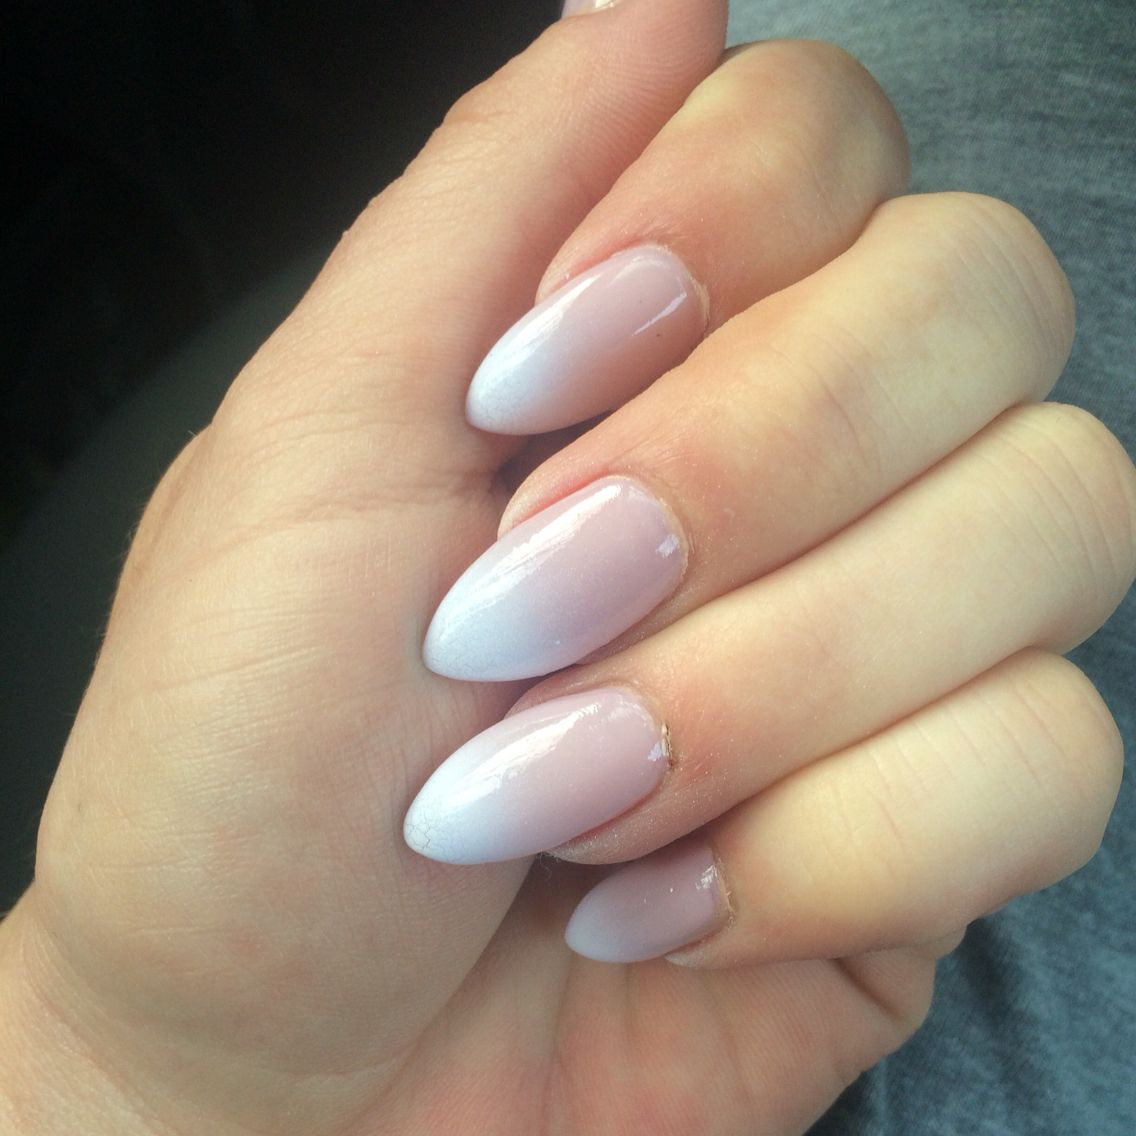 Ombre French Tip Almond Shaped Nails Round Nails Hair And Nails Almond Shape Nails